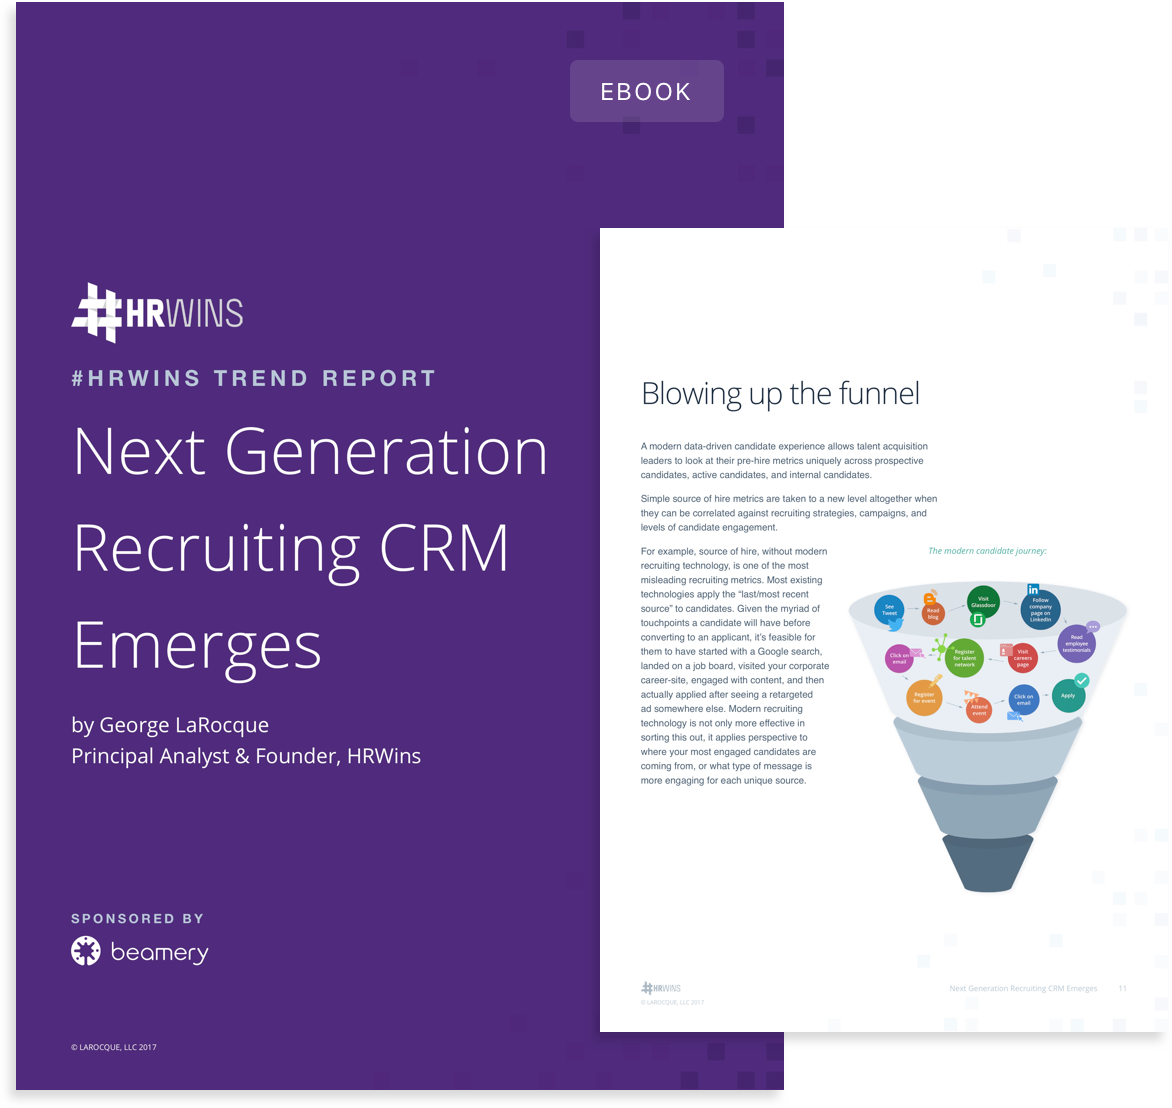 Next Generation Recruiting CRM Emerges